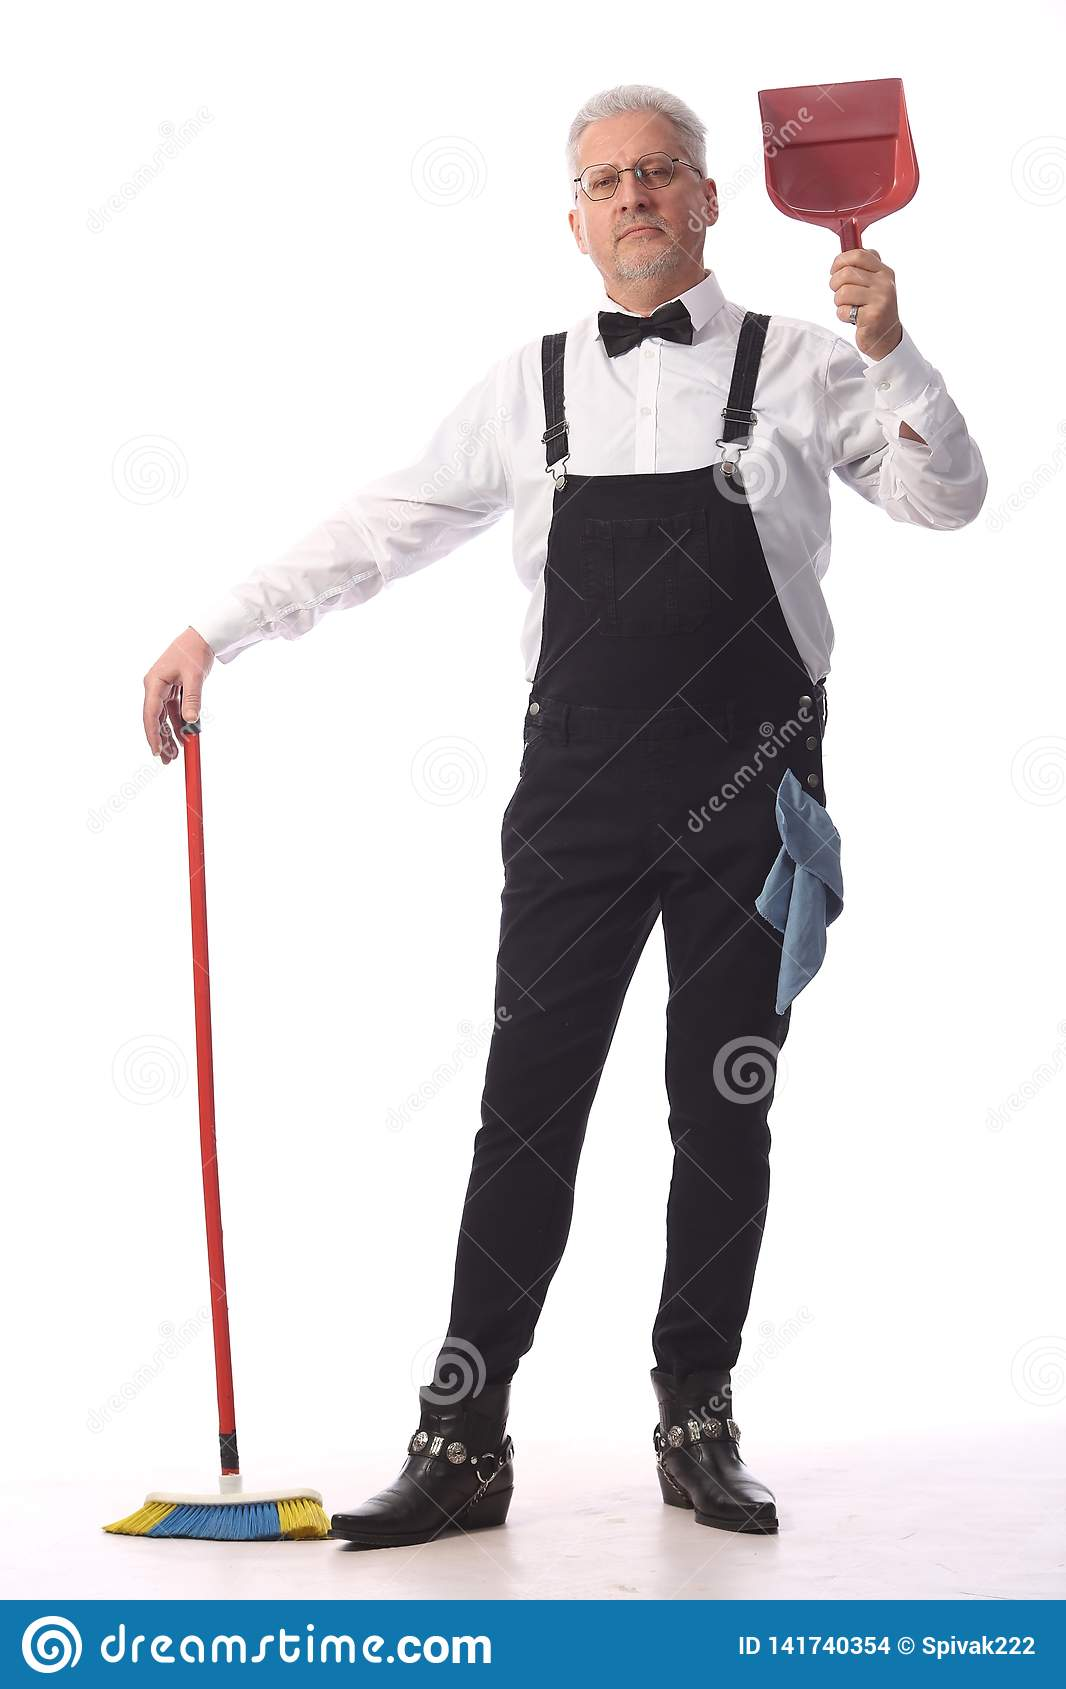 Gray-haired cleaner, janitor in a black jumpsuit with a mop and dustpan provides cleaning service, on white background